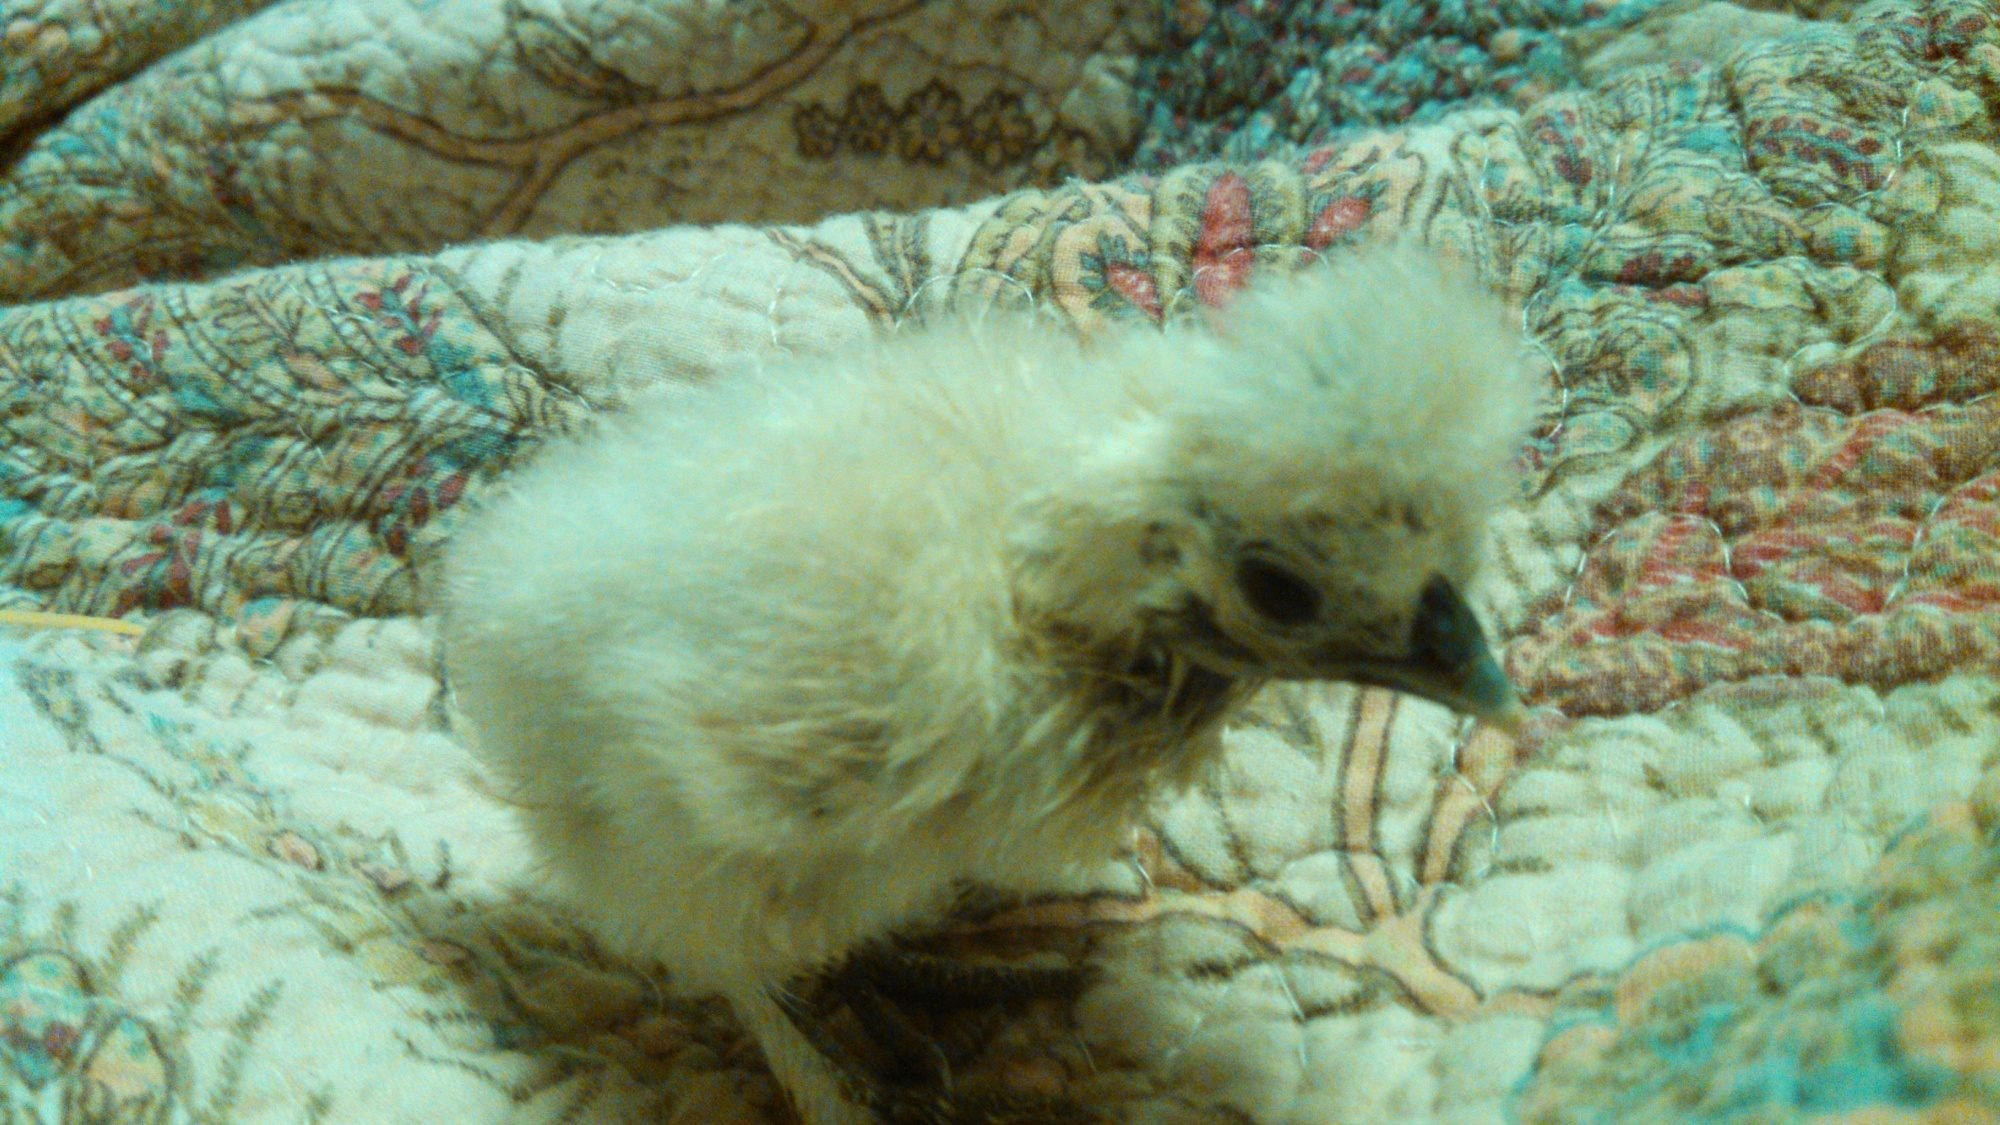 Silkie, labeled as a splash. Appears to have solid yellow down (fuzz). Correct skin, shanks, and toes.